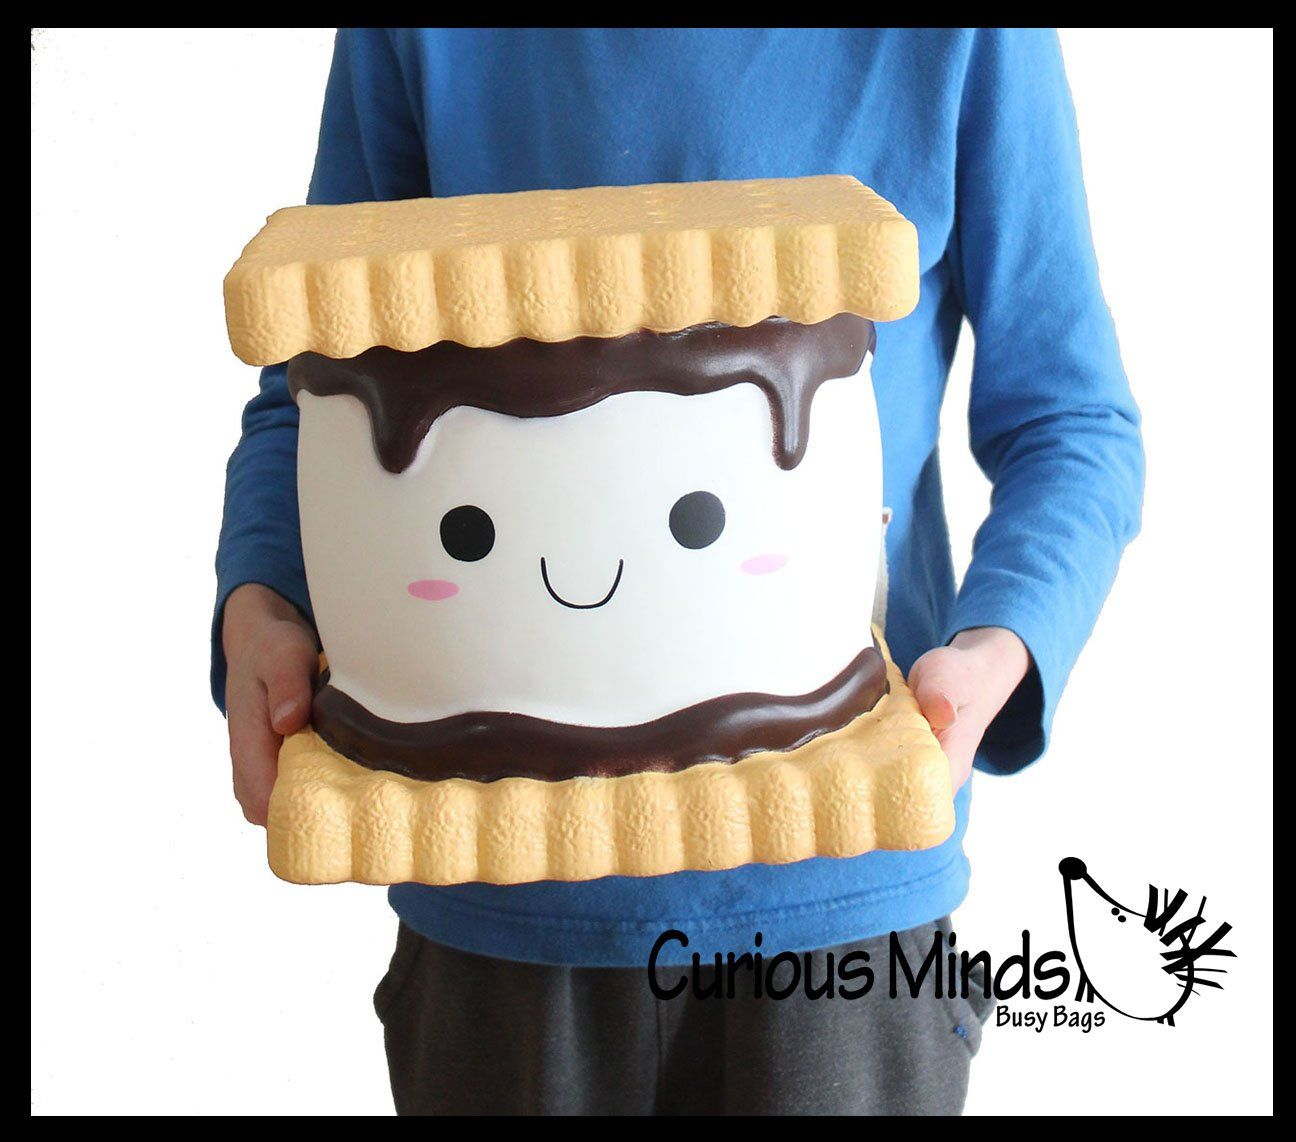 JUMBO S'more Squishy Slow Rise Foam Camp Food Toy - Scented Sensory, S | Curious Minds Busy Bags